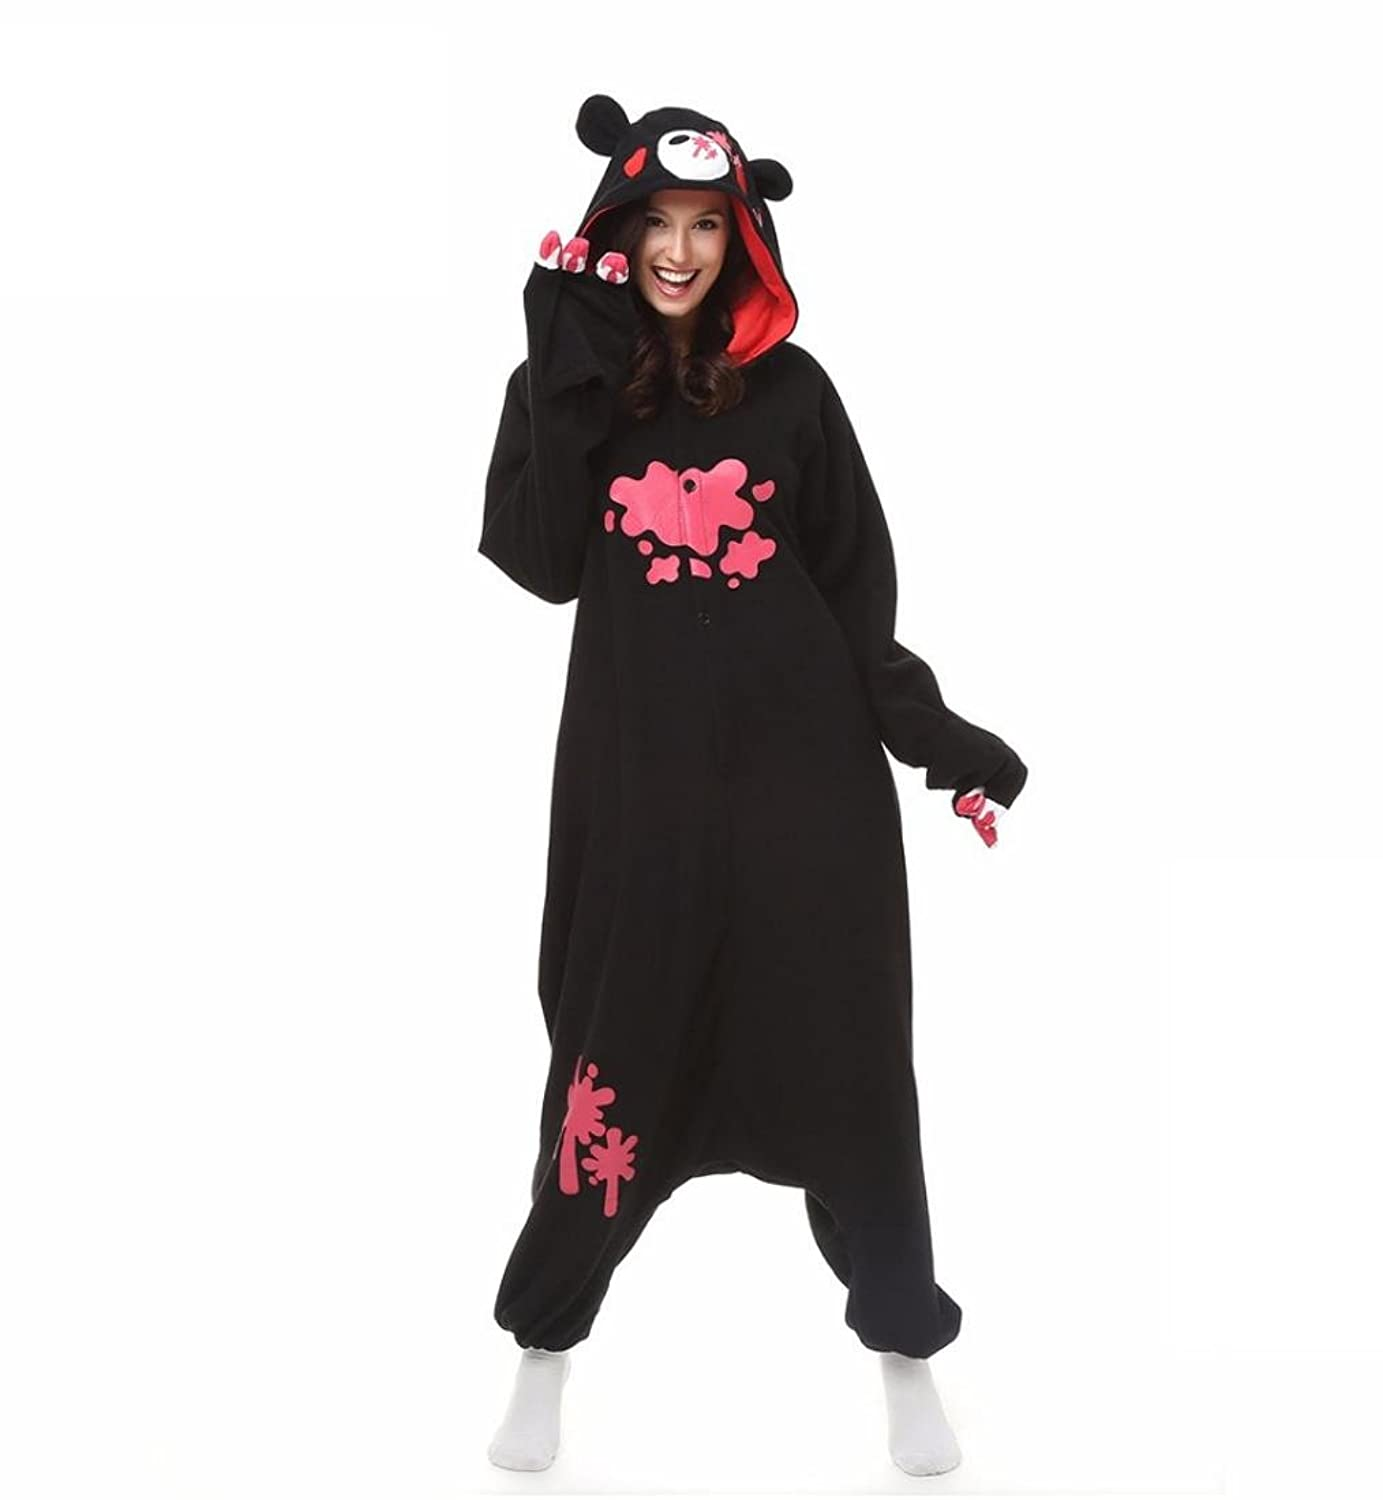 TuTu@ Kigurumi Pajamas Cosplay/ Bear / Raccoon Leotard/Onesie Halloween Animal Sleepwear Black Patchwork Polar Fleece Kigurumi Unisex